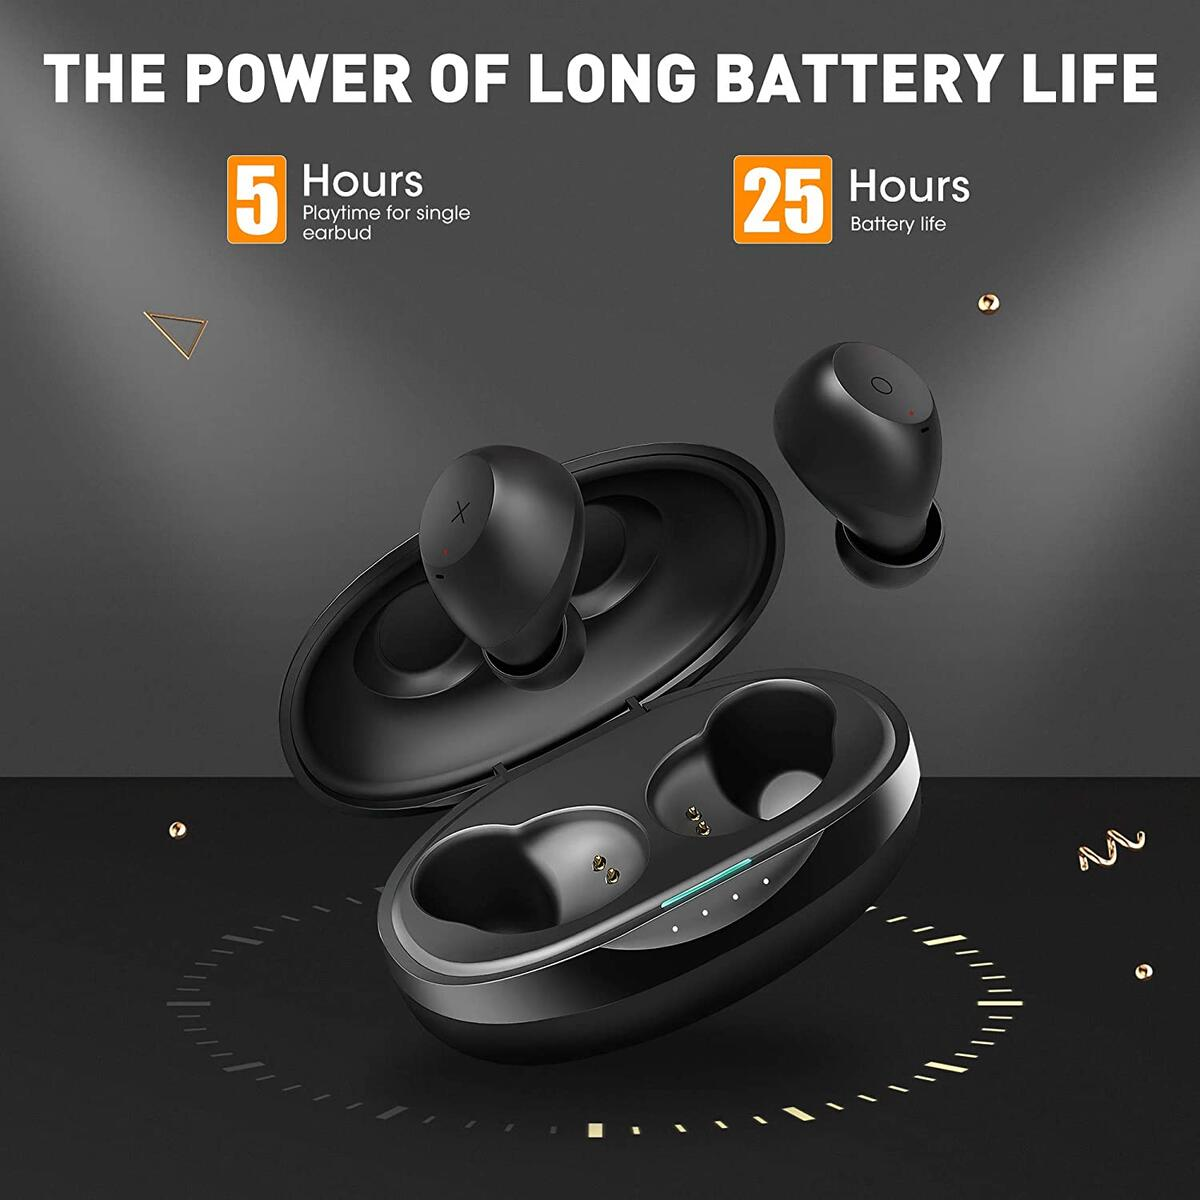 Wireless Earbuds with aptX Hi-Fi Deep Bass,CRUA IPX7 Waterproof Bluetooth Earbuds with Mic in Ear with 25H Playtime,Touch Control Hands-Free with Noise Cancellation Mic for iPhone, Andriod Black